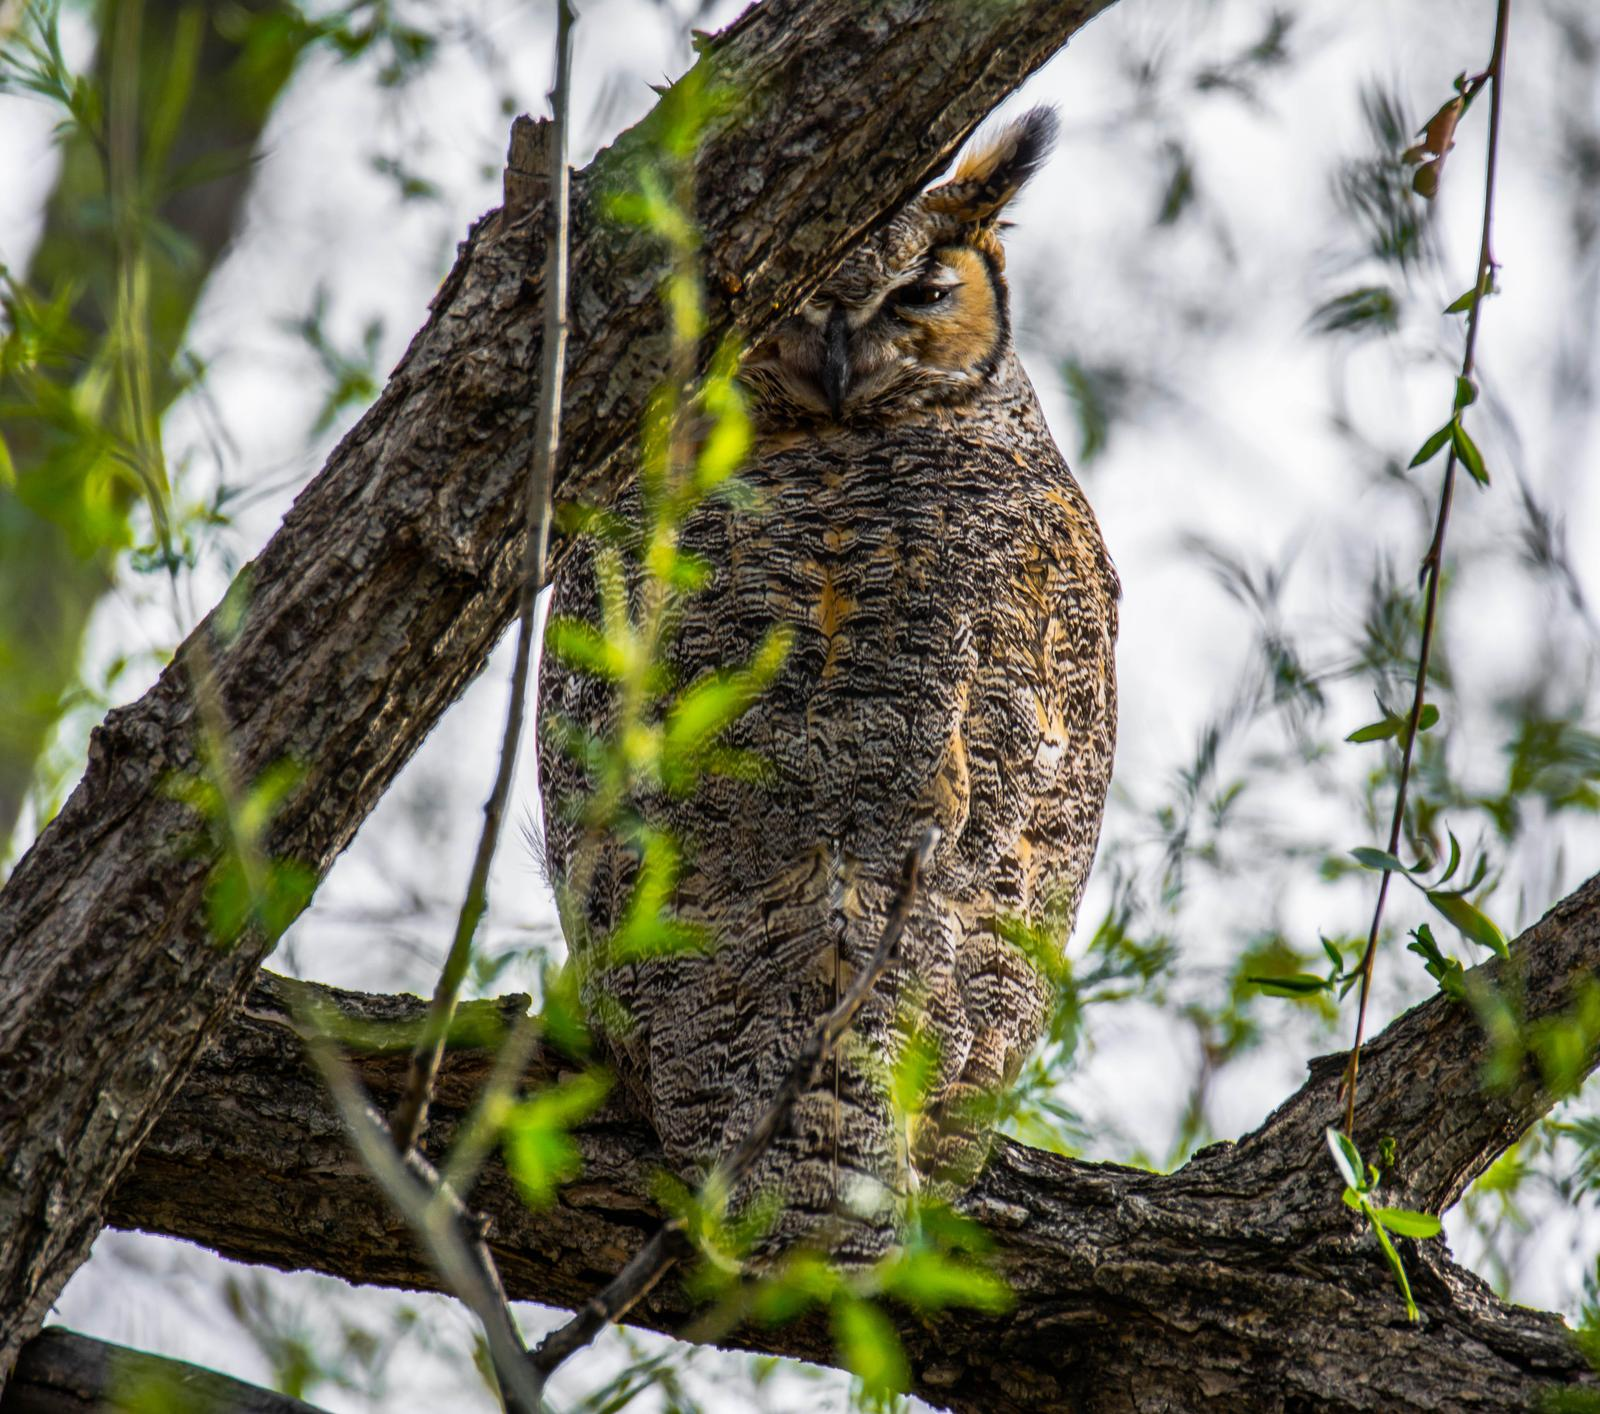 Great Horned Owl Photo by Karen Prisby